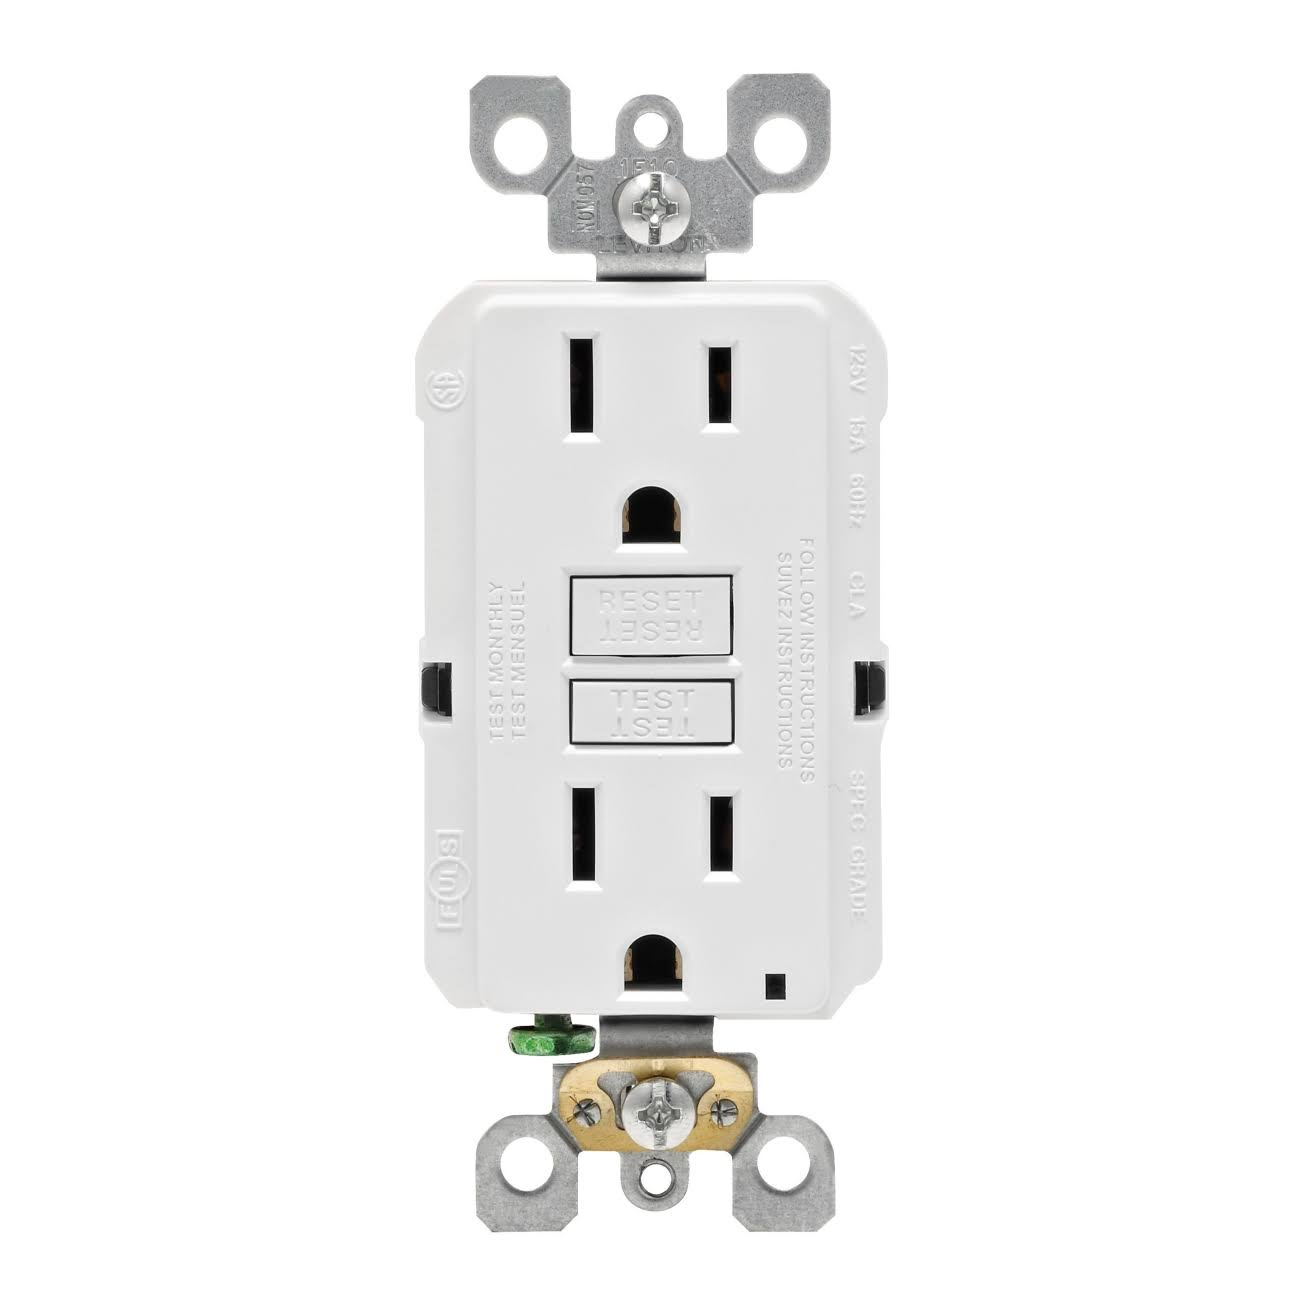 Leviton GFCI Outlet - White, 15A, 125V